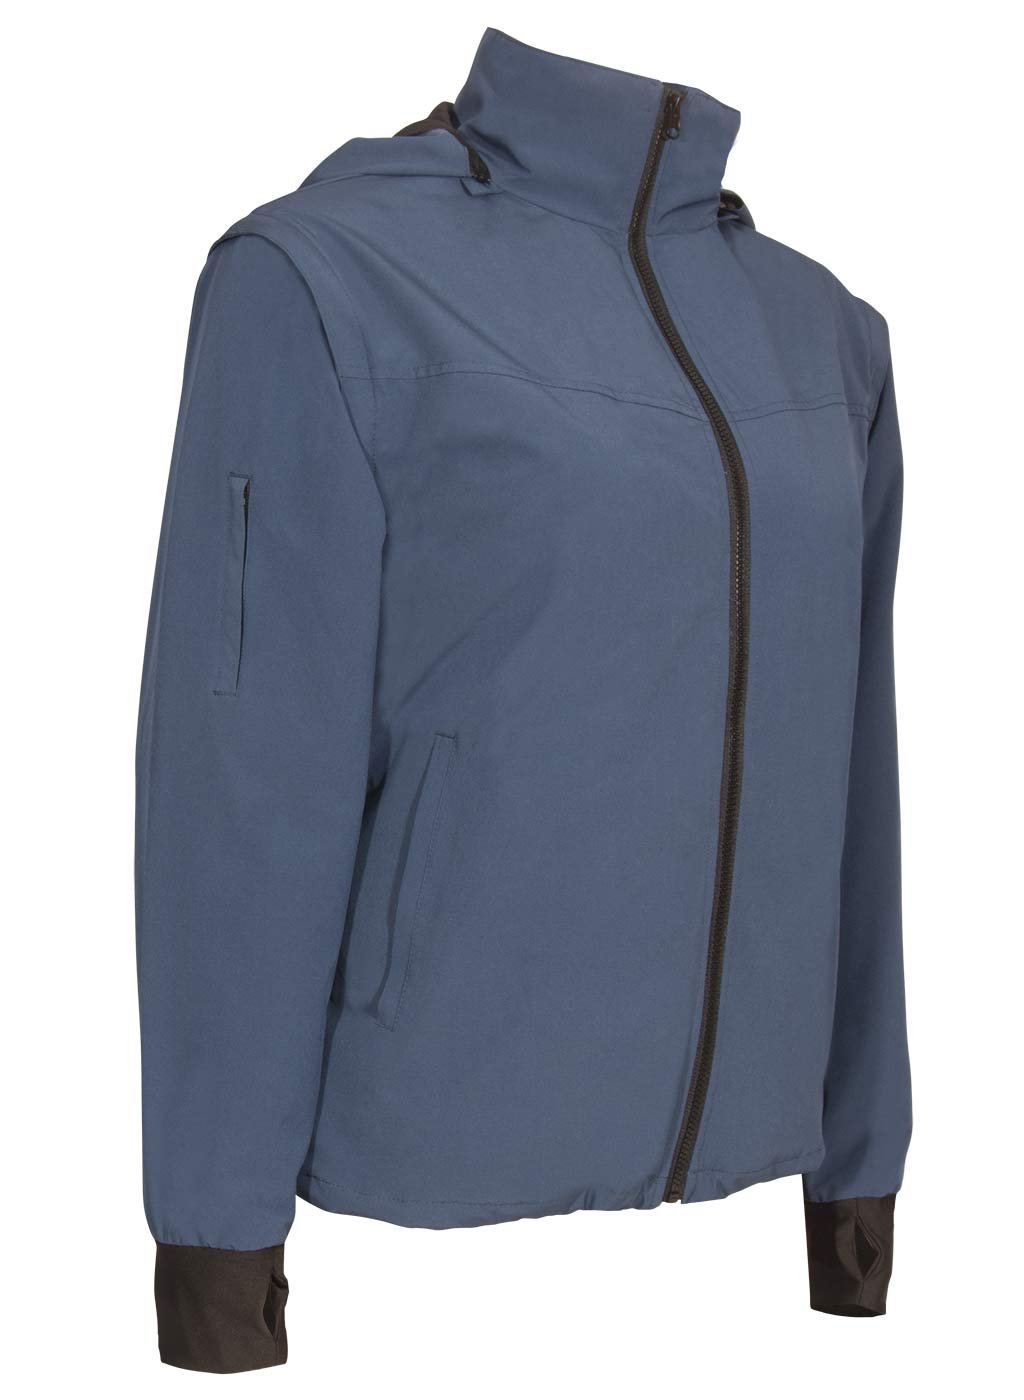 Joey Travel Jacket with Hidden Pockets. (Medium, Blue) by Global Travel Clothing (Image #2)